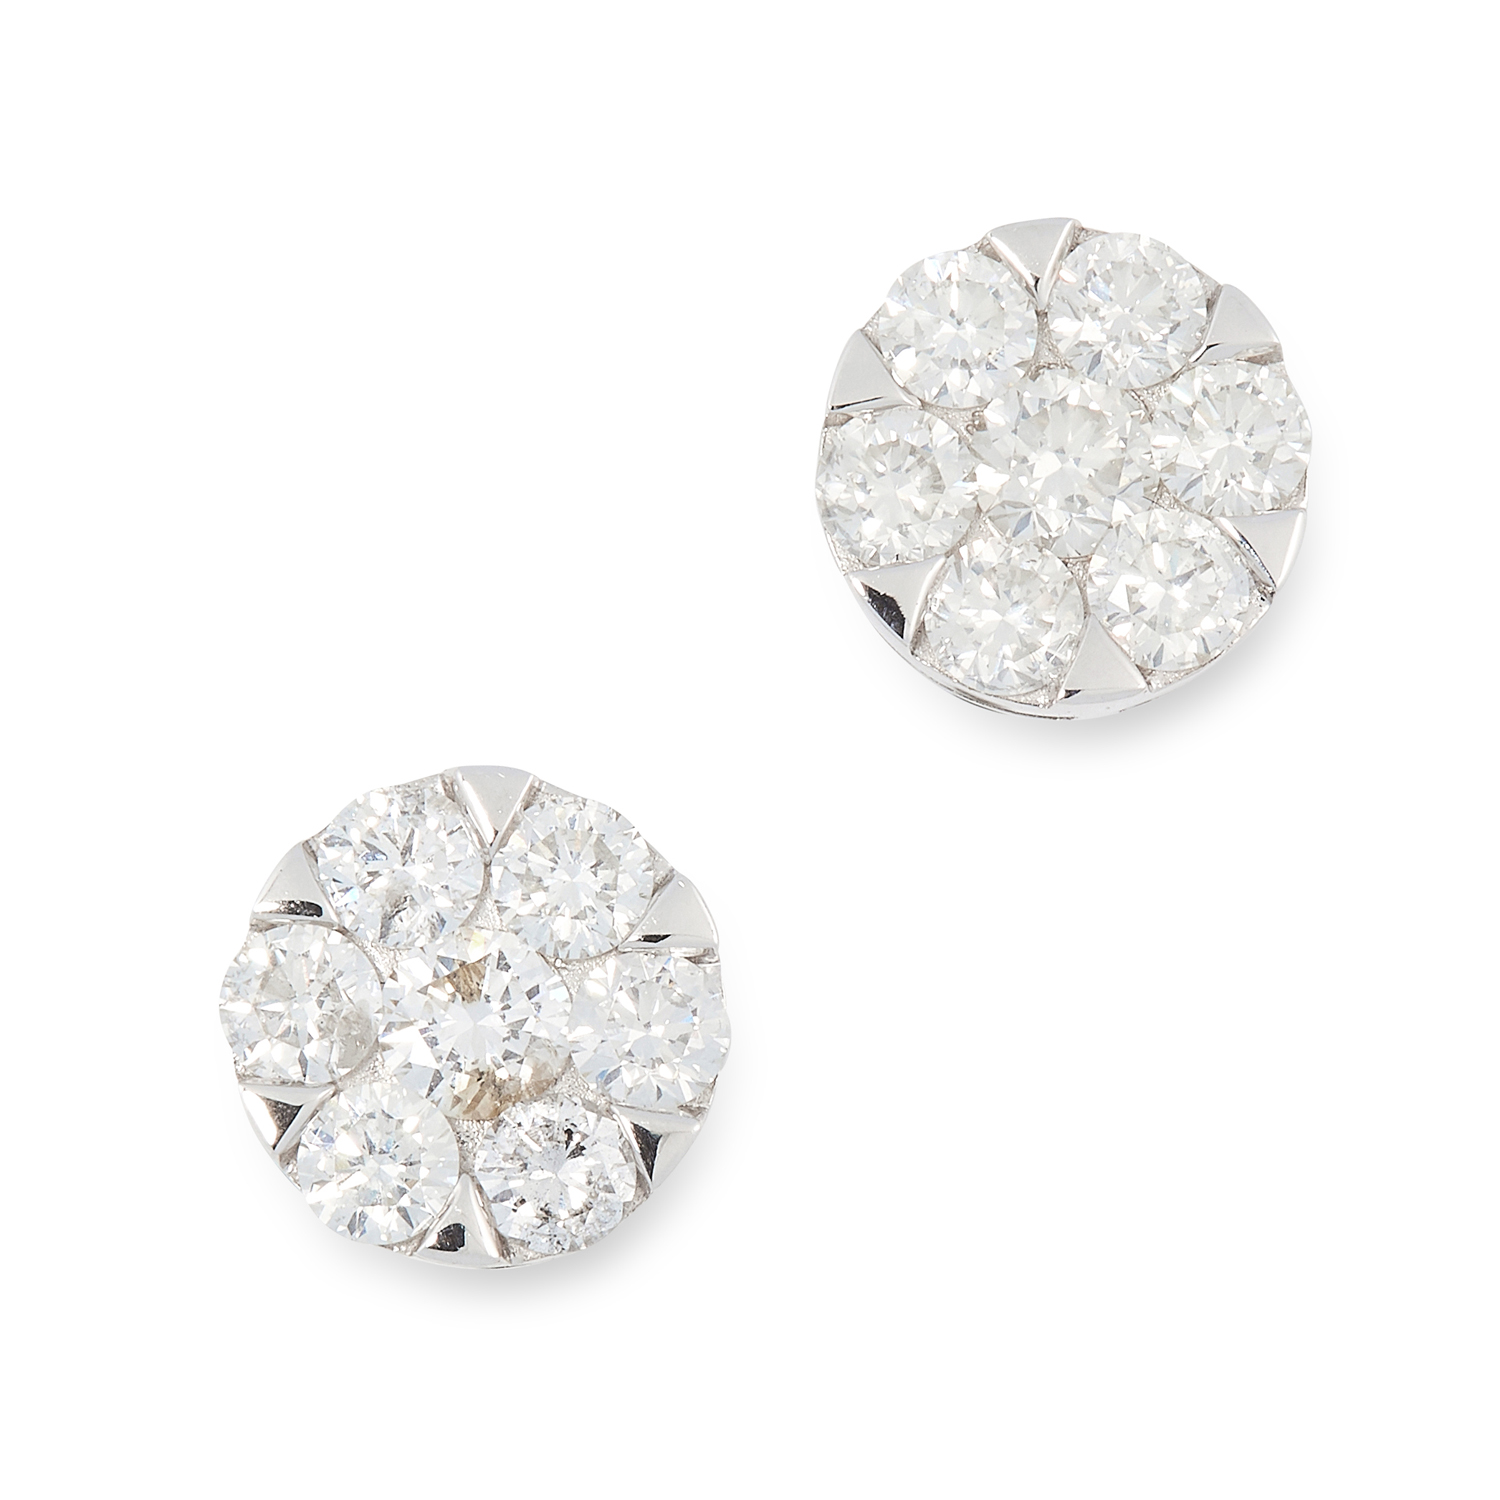 A PAIR OF 1.01 CARAT DIAMOND CLUSTER EARRINGS in floral design, set with 1.01 carats of round modern